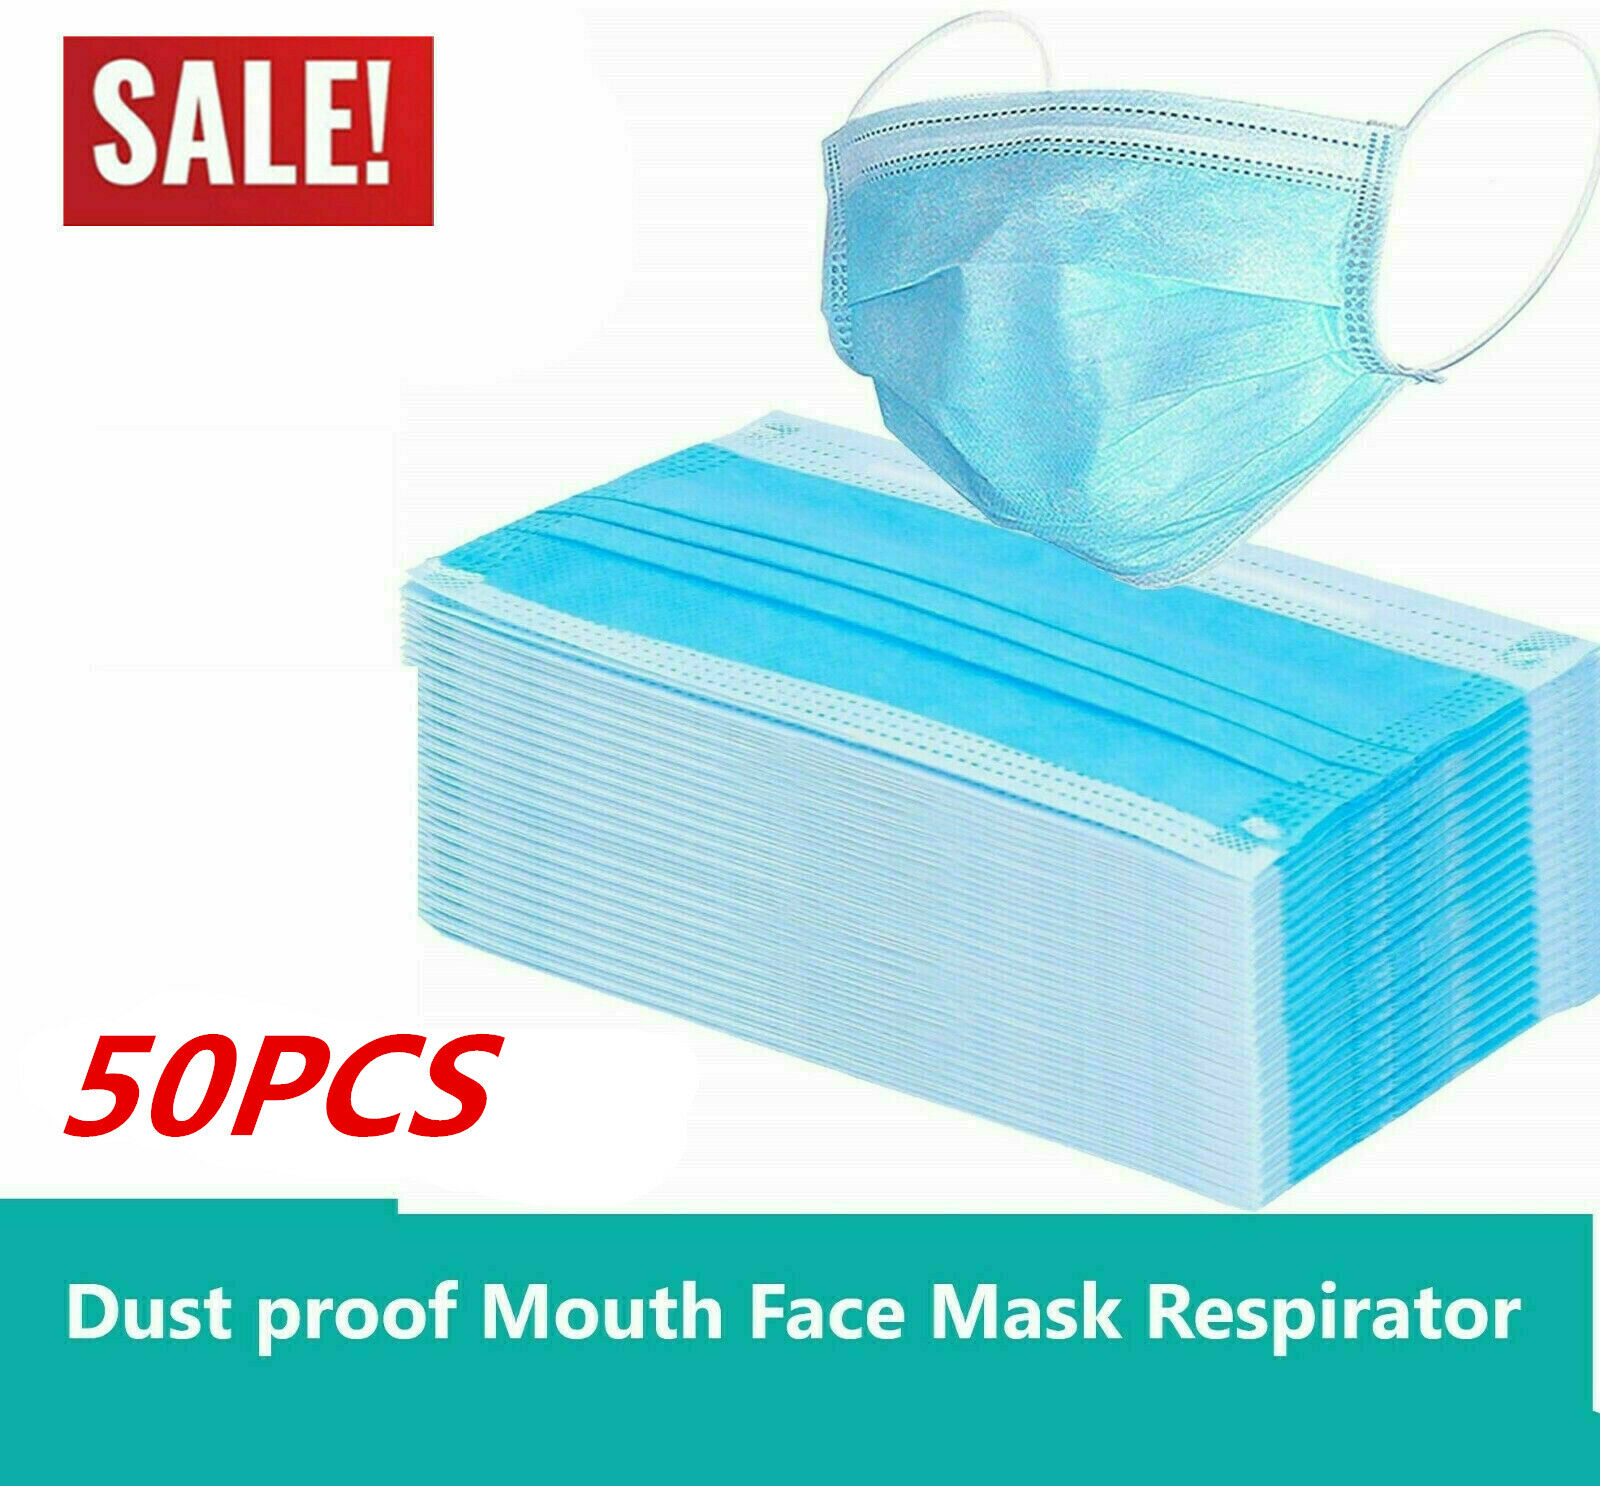 Mbuynow 50X Disposable Medical Surgical Face Masks 3 Ply Dust Smog Flu Mask